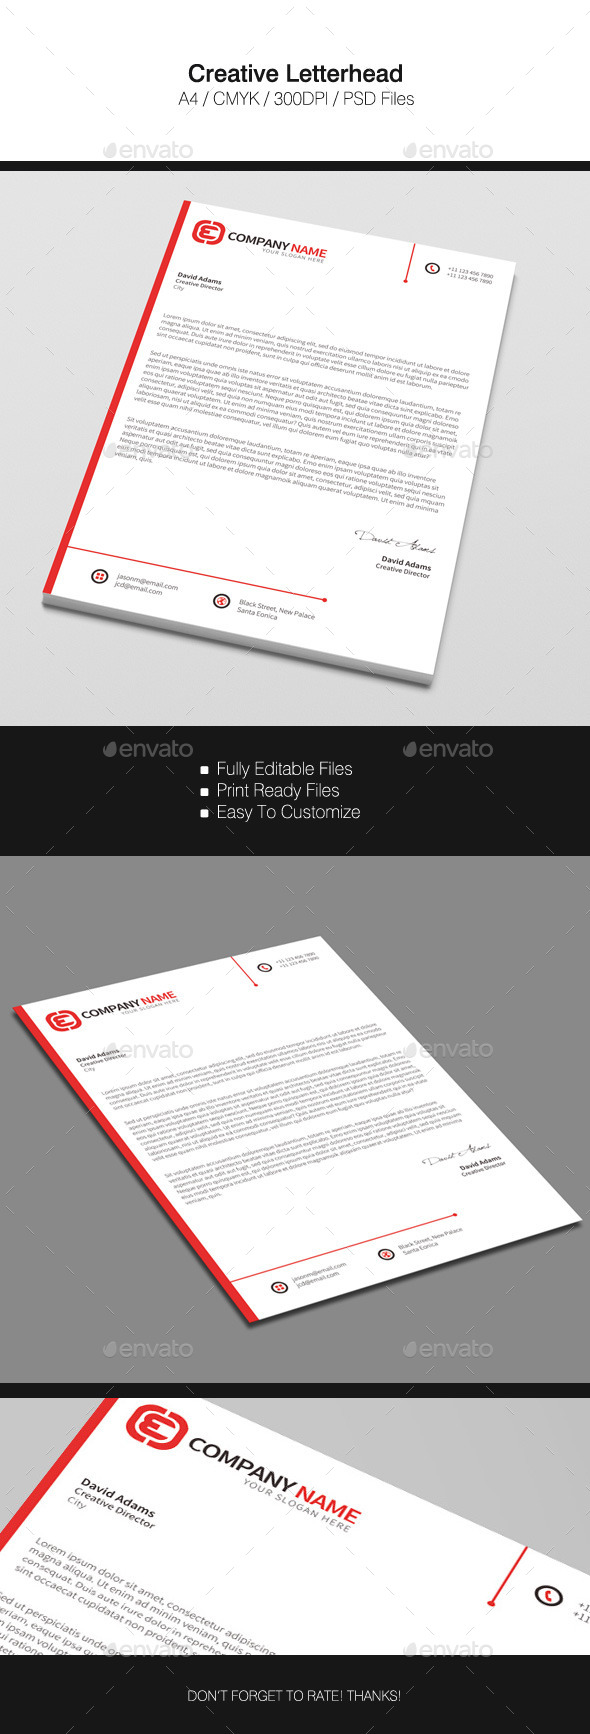 GraphicRiver Creative Letterhead 11778377